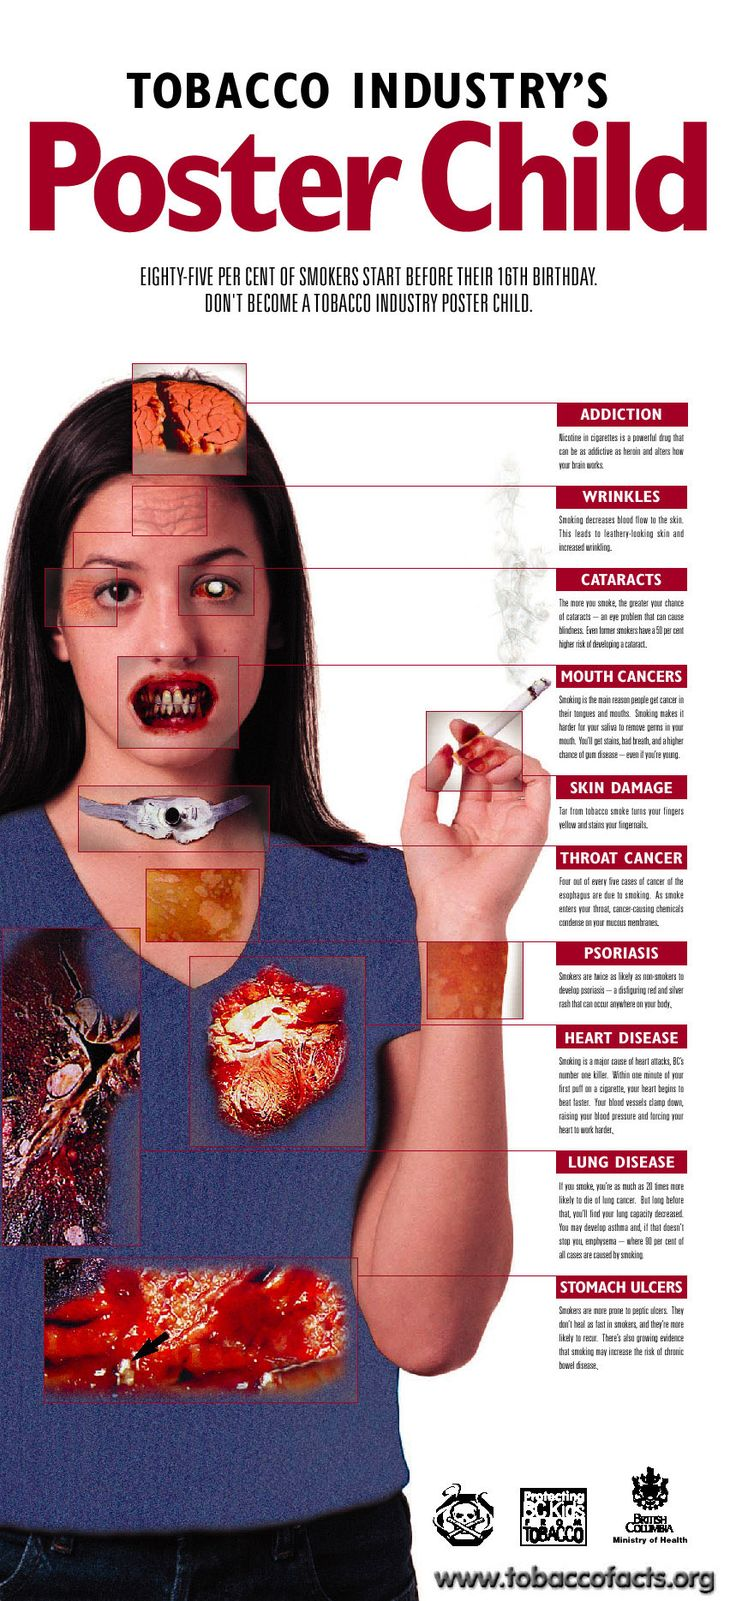 gross this is why people need to stop smoking!!